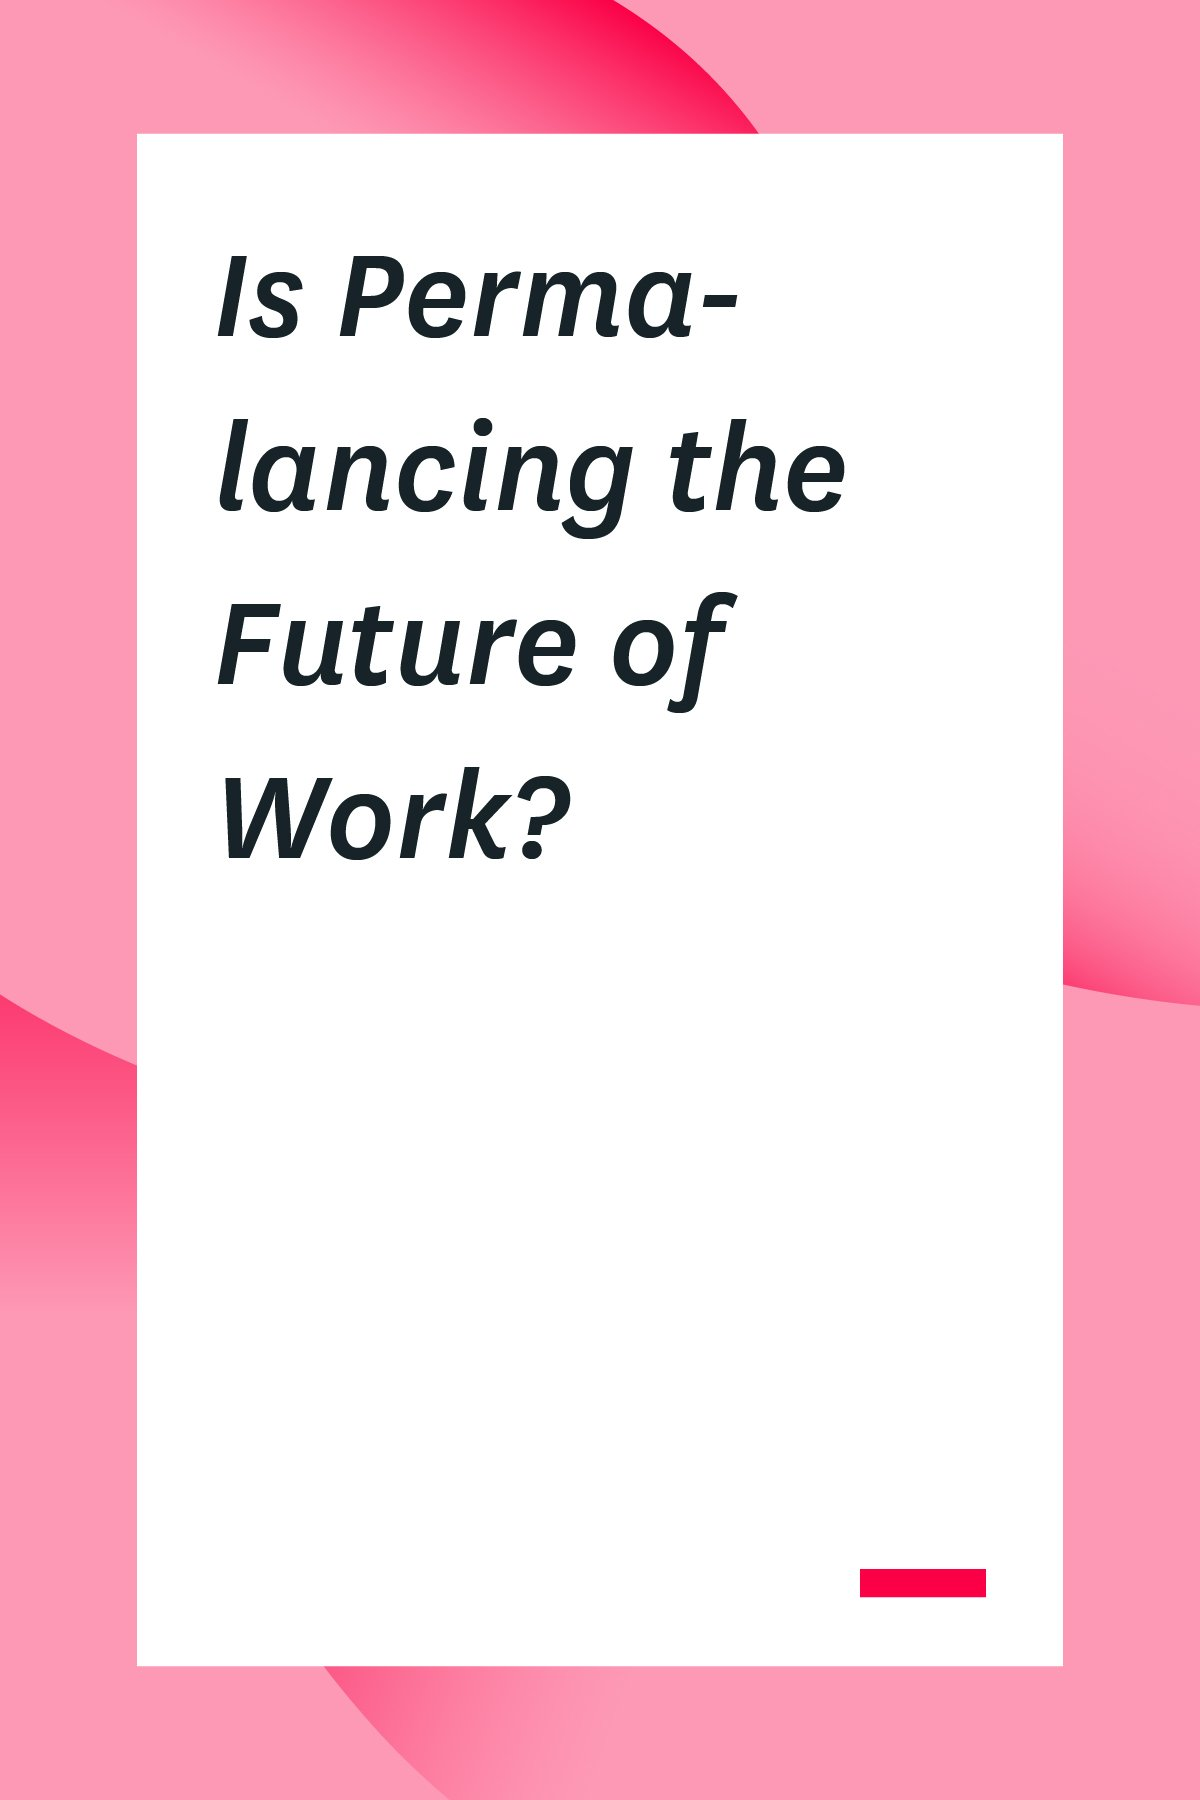 What's the difference between freelancing and permalancing? And why has permalancing become so popular recently? Should you permalance or look for regular full-time employment? One expert shares her story and tips. #freelance #workfromhome